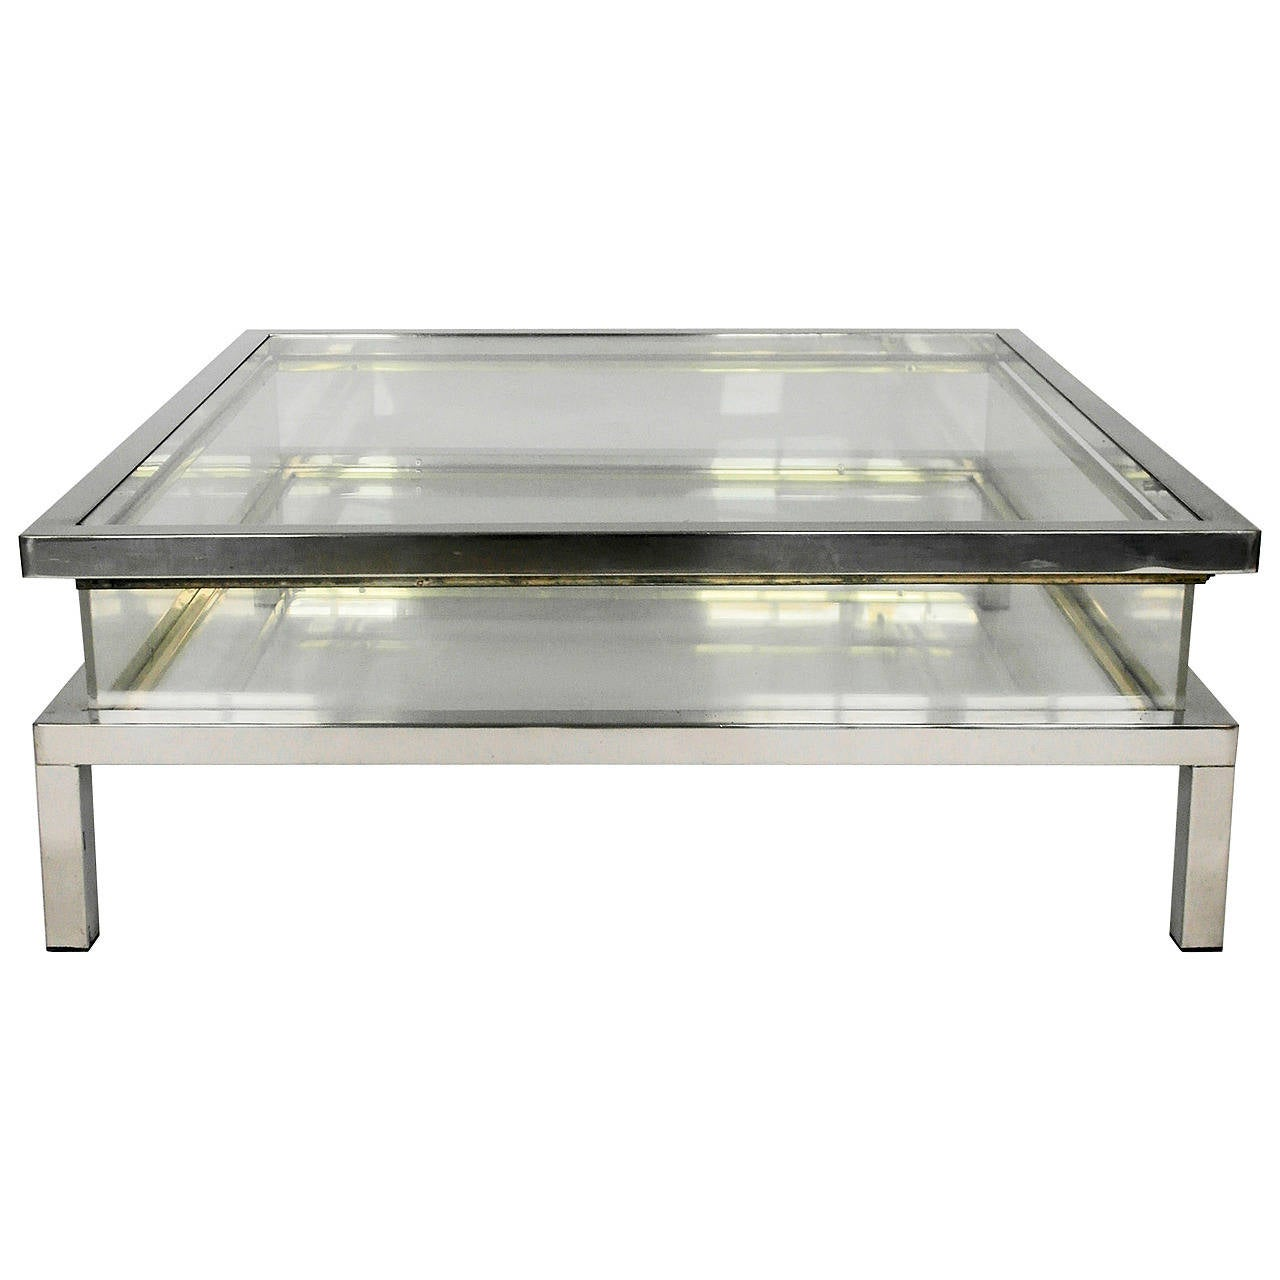 Mid century chrome and perspex sliding box coffee table for sale at 1stdibs Glass box coffee table